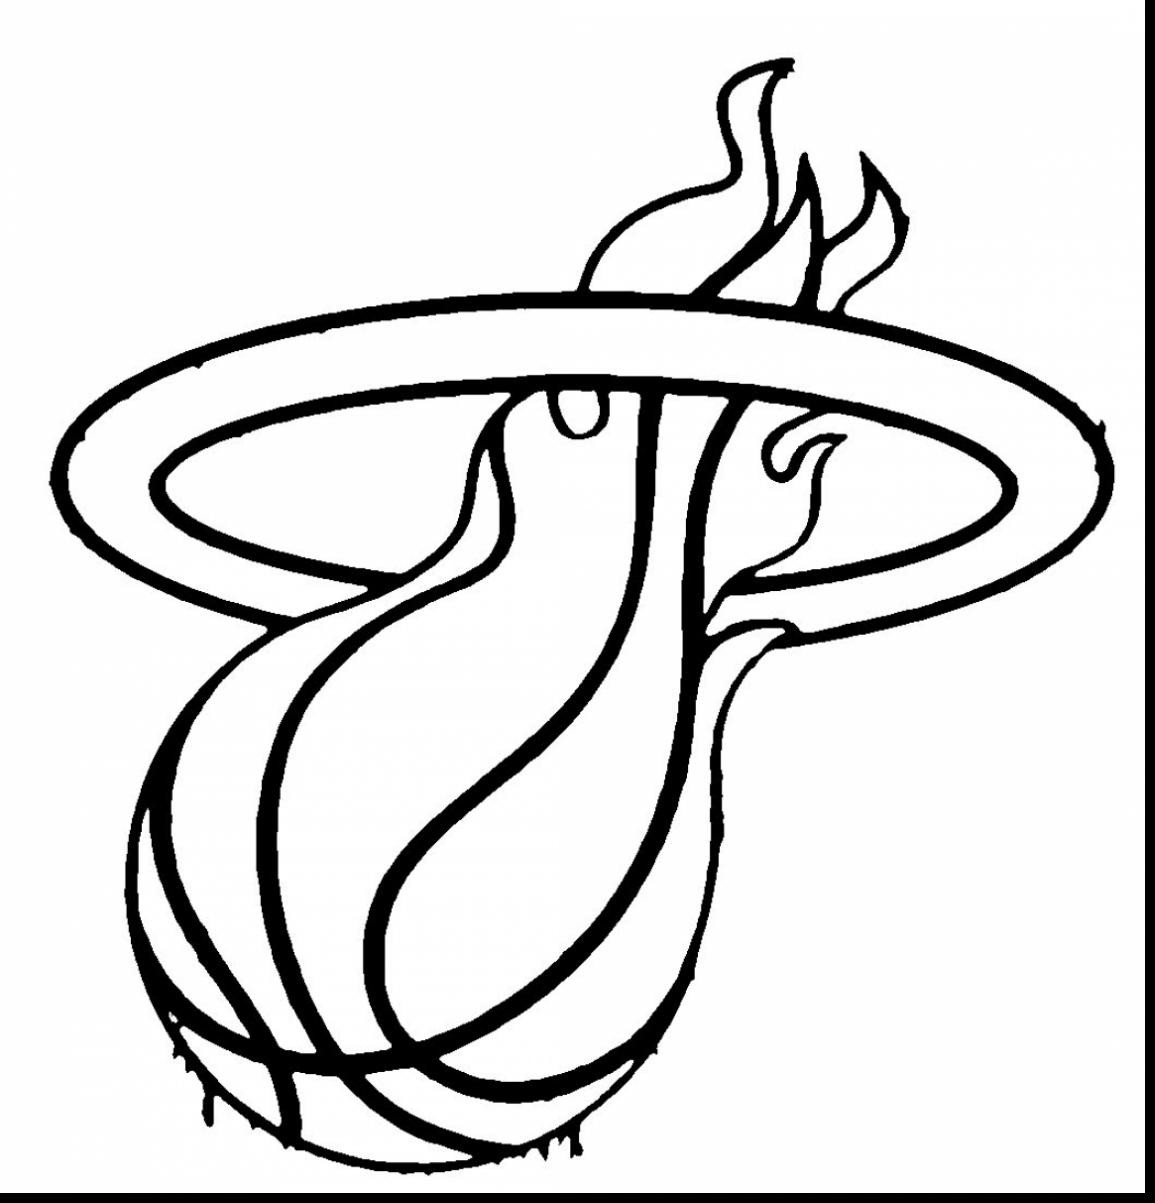 lakers coloring pages lakers coloring pages at getcoloringscom free printable lakers coloring pages 1 1